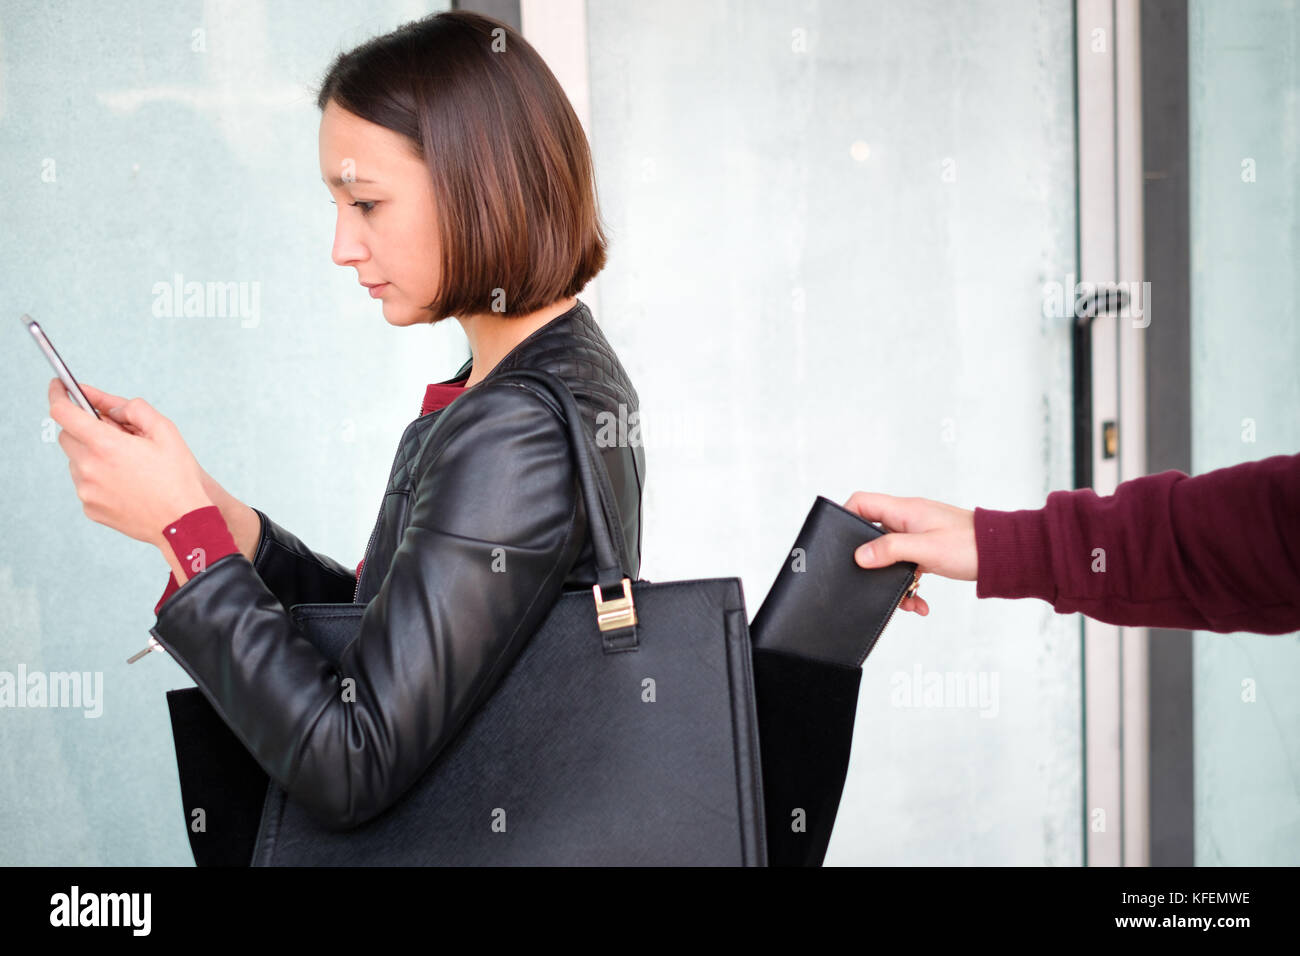 Thief picking the wallet from the bag of a careless girl - Stock Image